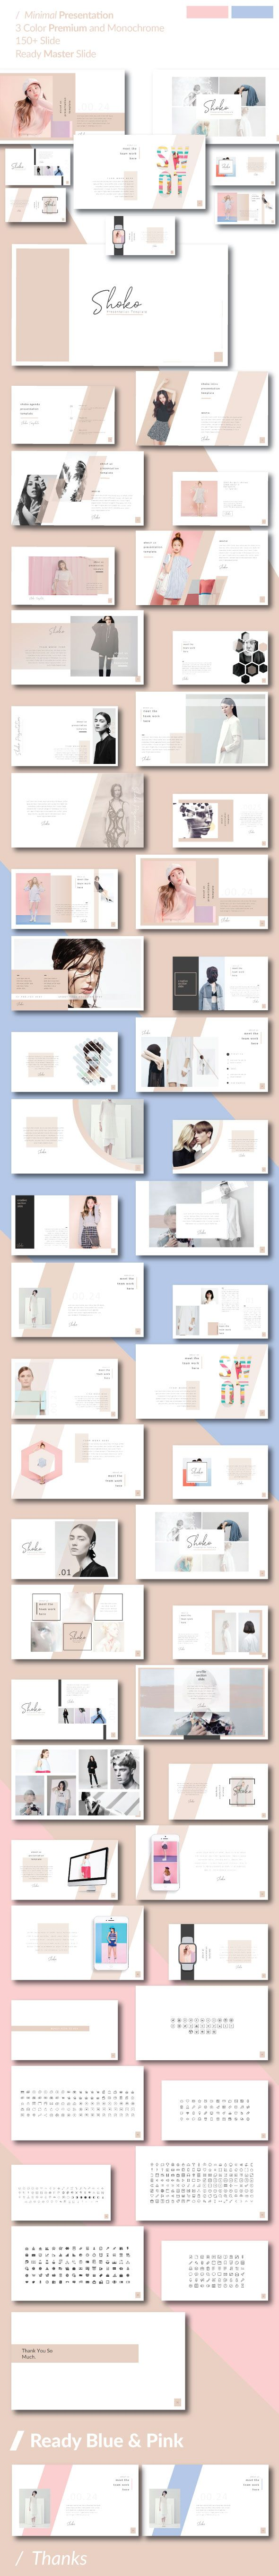 Shoko Minimal Powerpoint Template - Business PowerPoint Templates